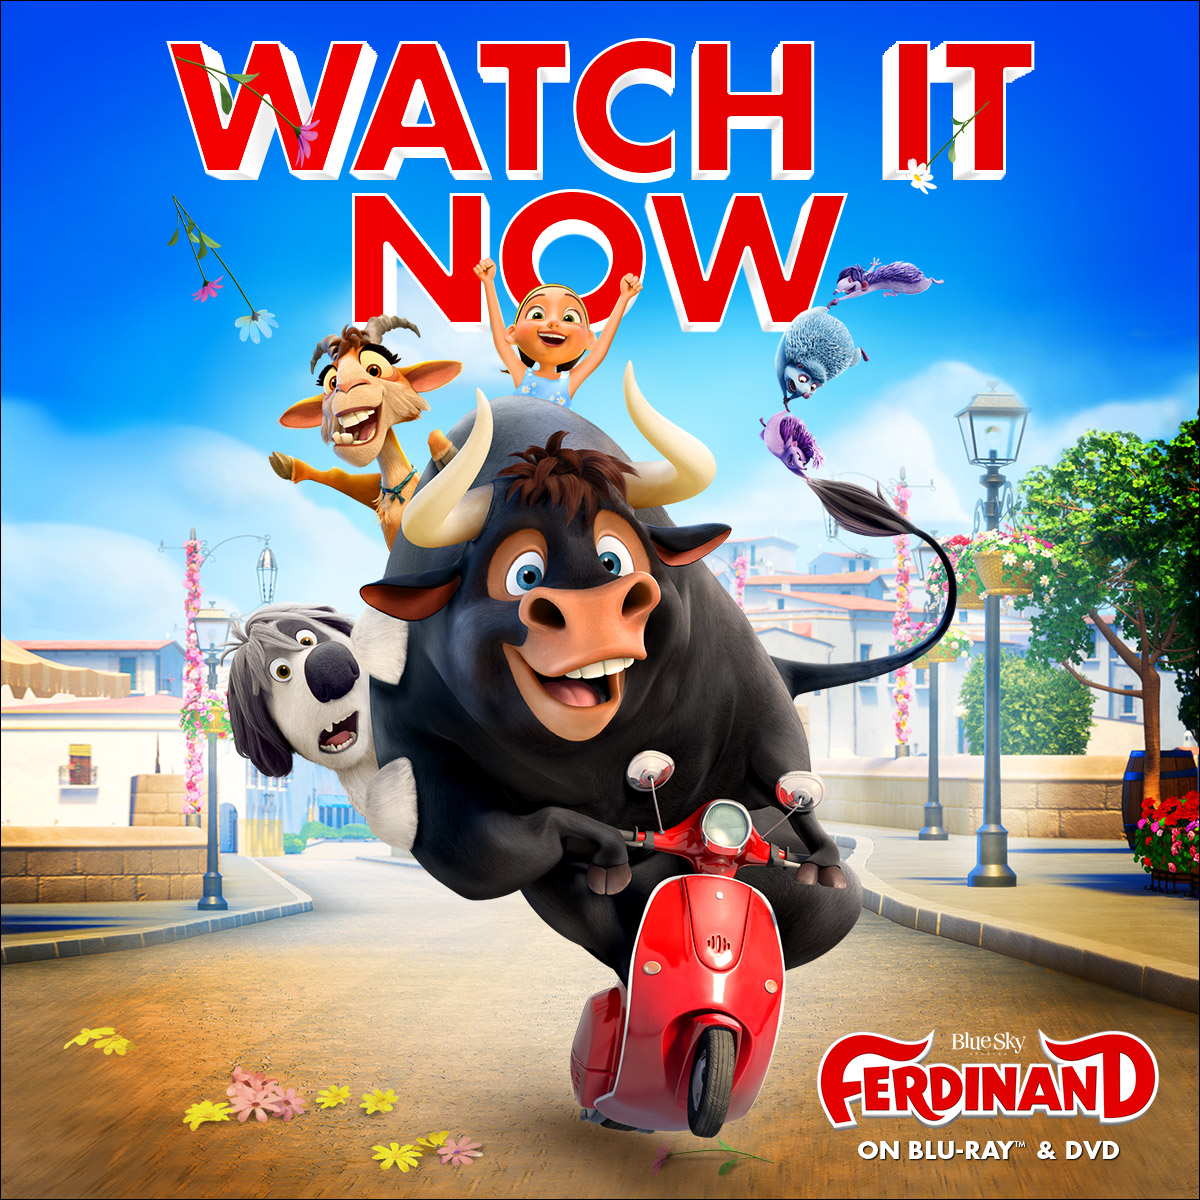 Ferdinand Out On DVD And Blu-ray For Family Entertainment